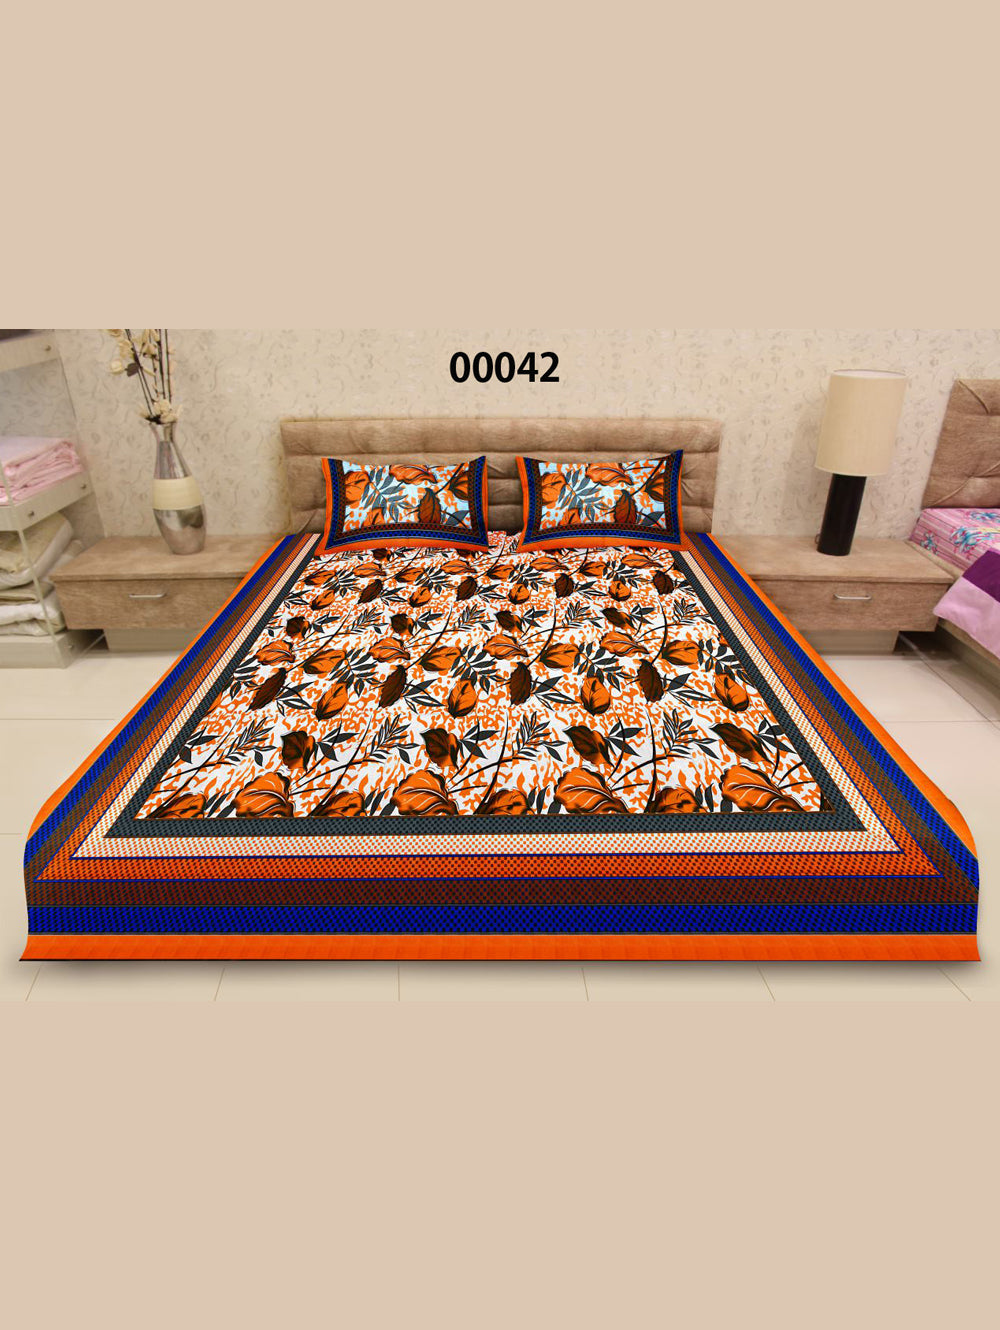 00042Orange and White Ethnic Cotton Queen Size Floral Bedsheet With 2 Pillow Covers